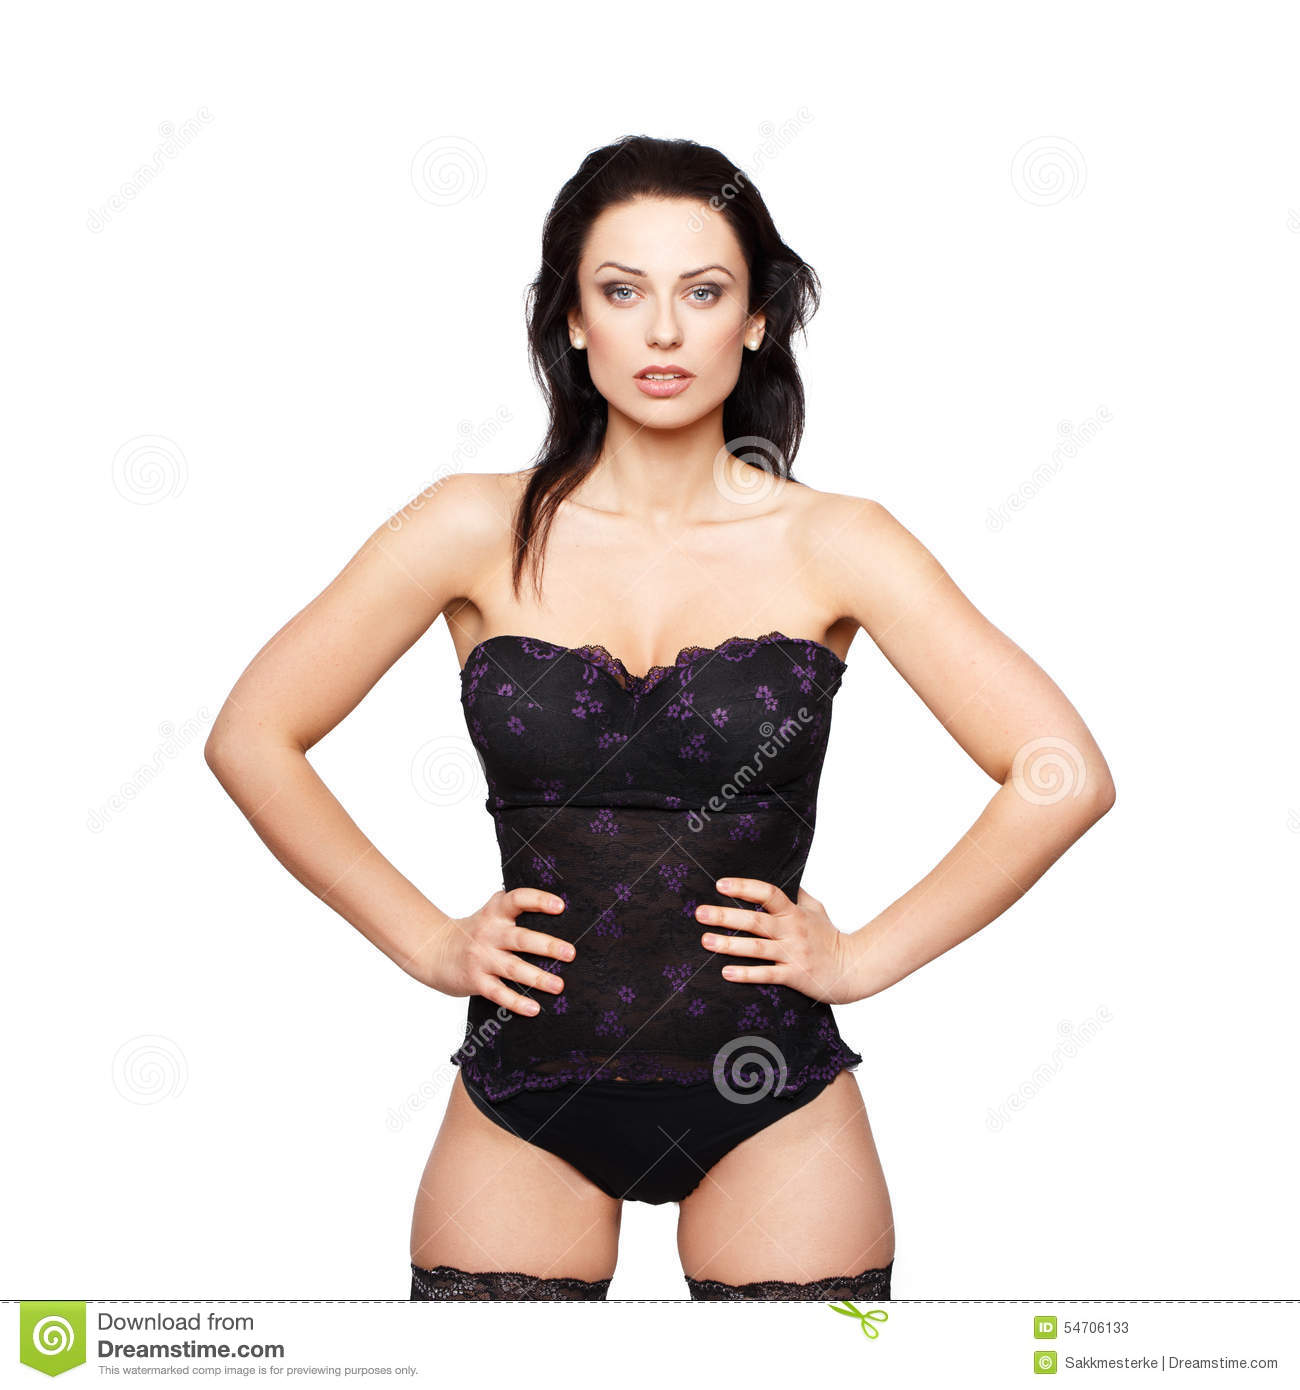 Sexy Woman In Corset Posing Isolated Stock Photo - Image: 54706133